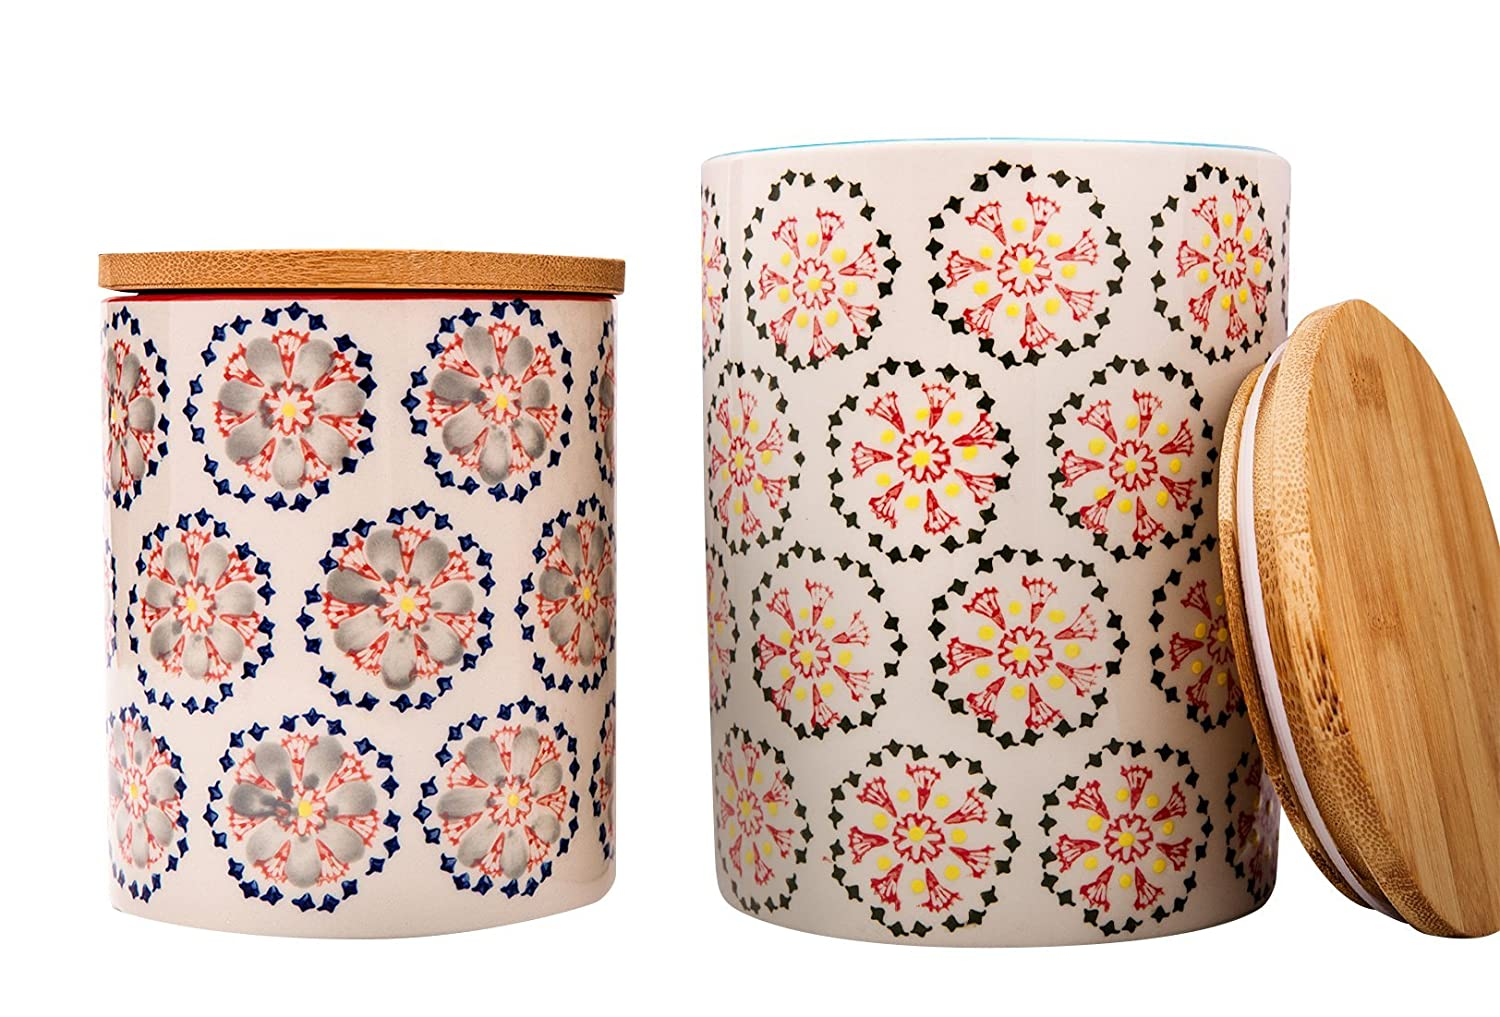 Kitchen Canister Set 2 Stoneware Jars for Tea, Coffee, Sugar, Vintage Embossed Floral Pattern, Kitchen Gift LA JOLIE MUSE